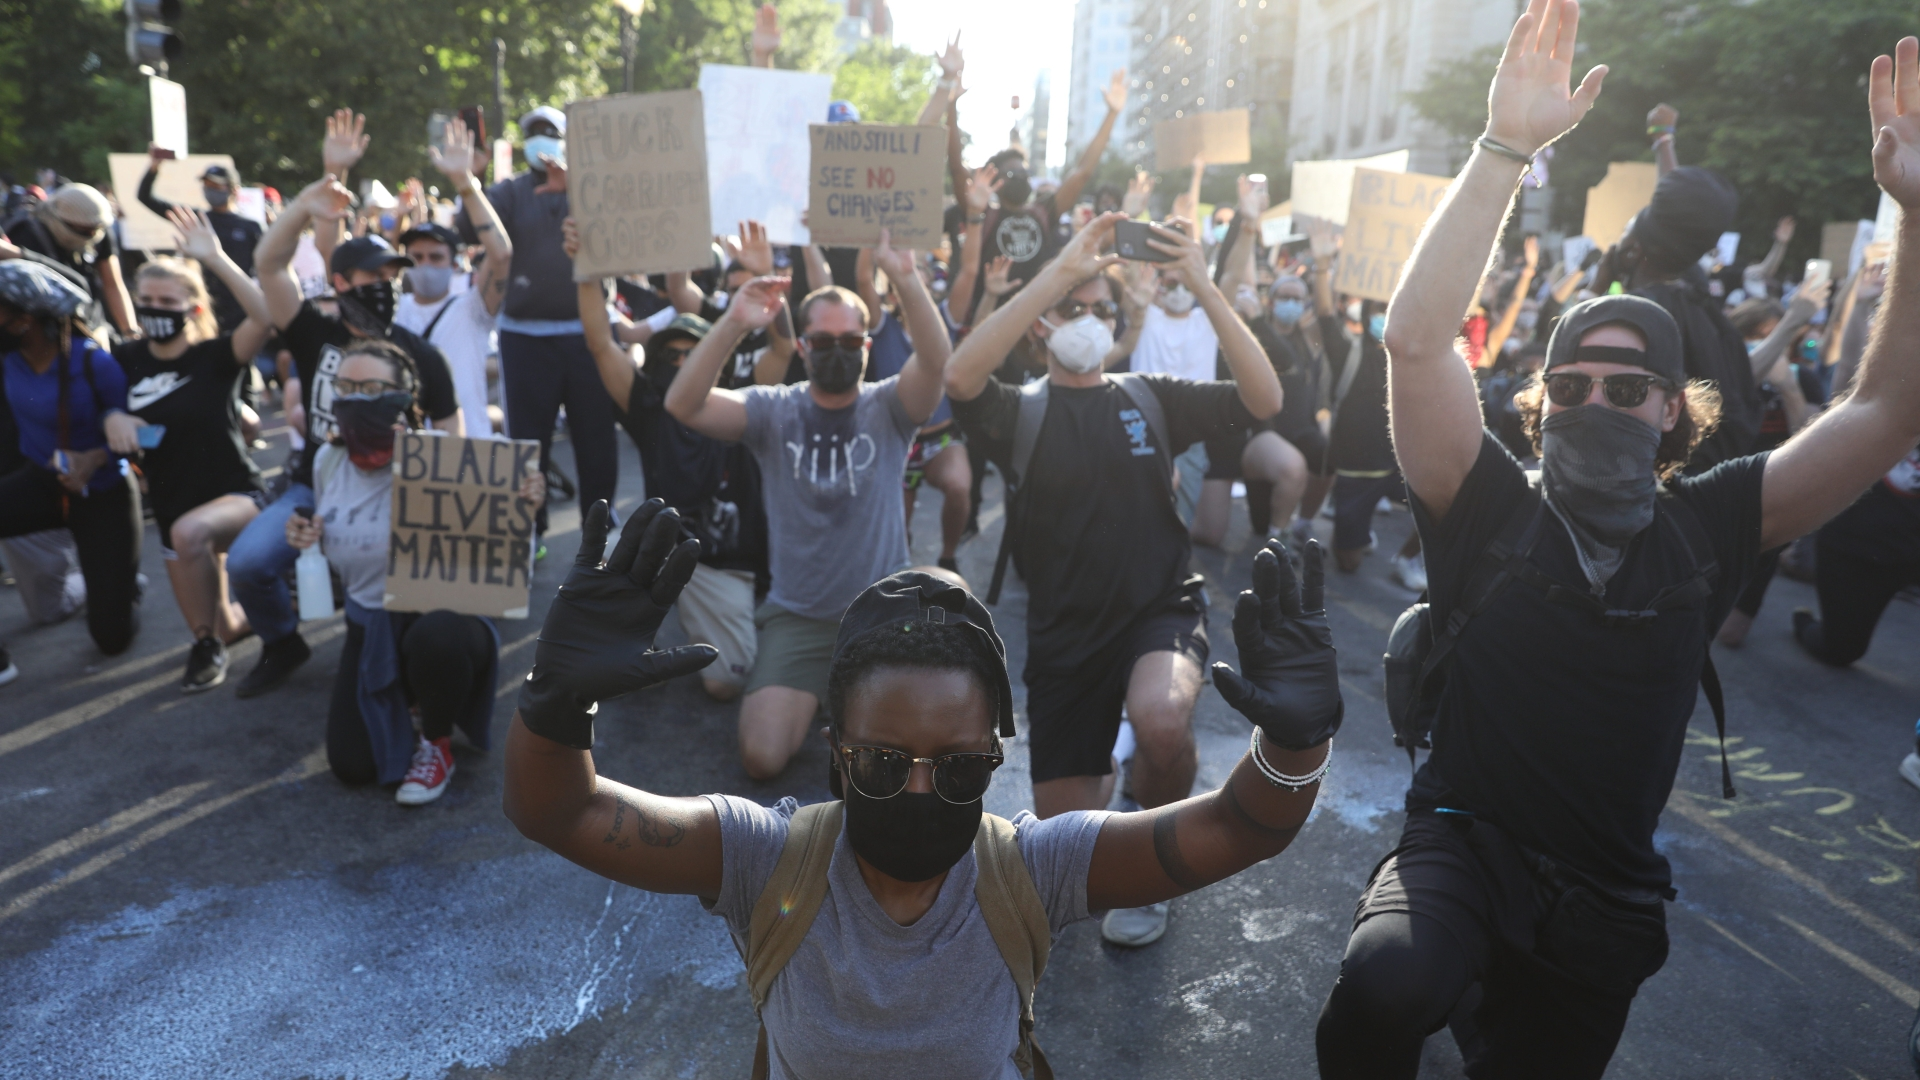 'Protest and demonstrate in a peaceful manner' church leaders urge in downtown LA gathering